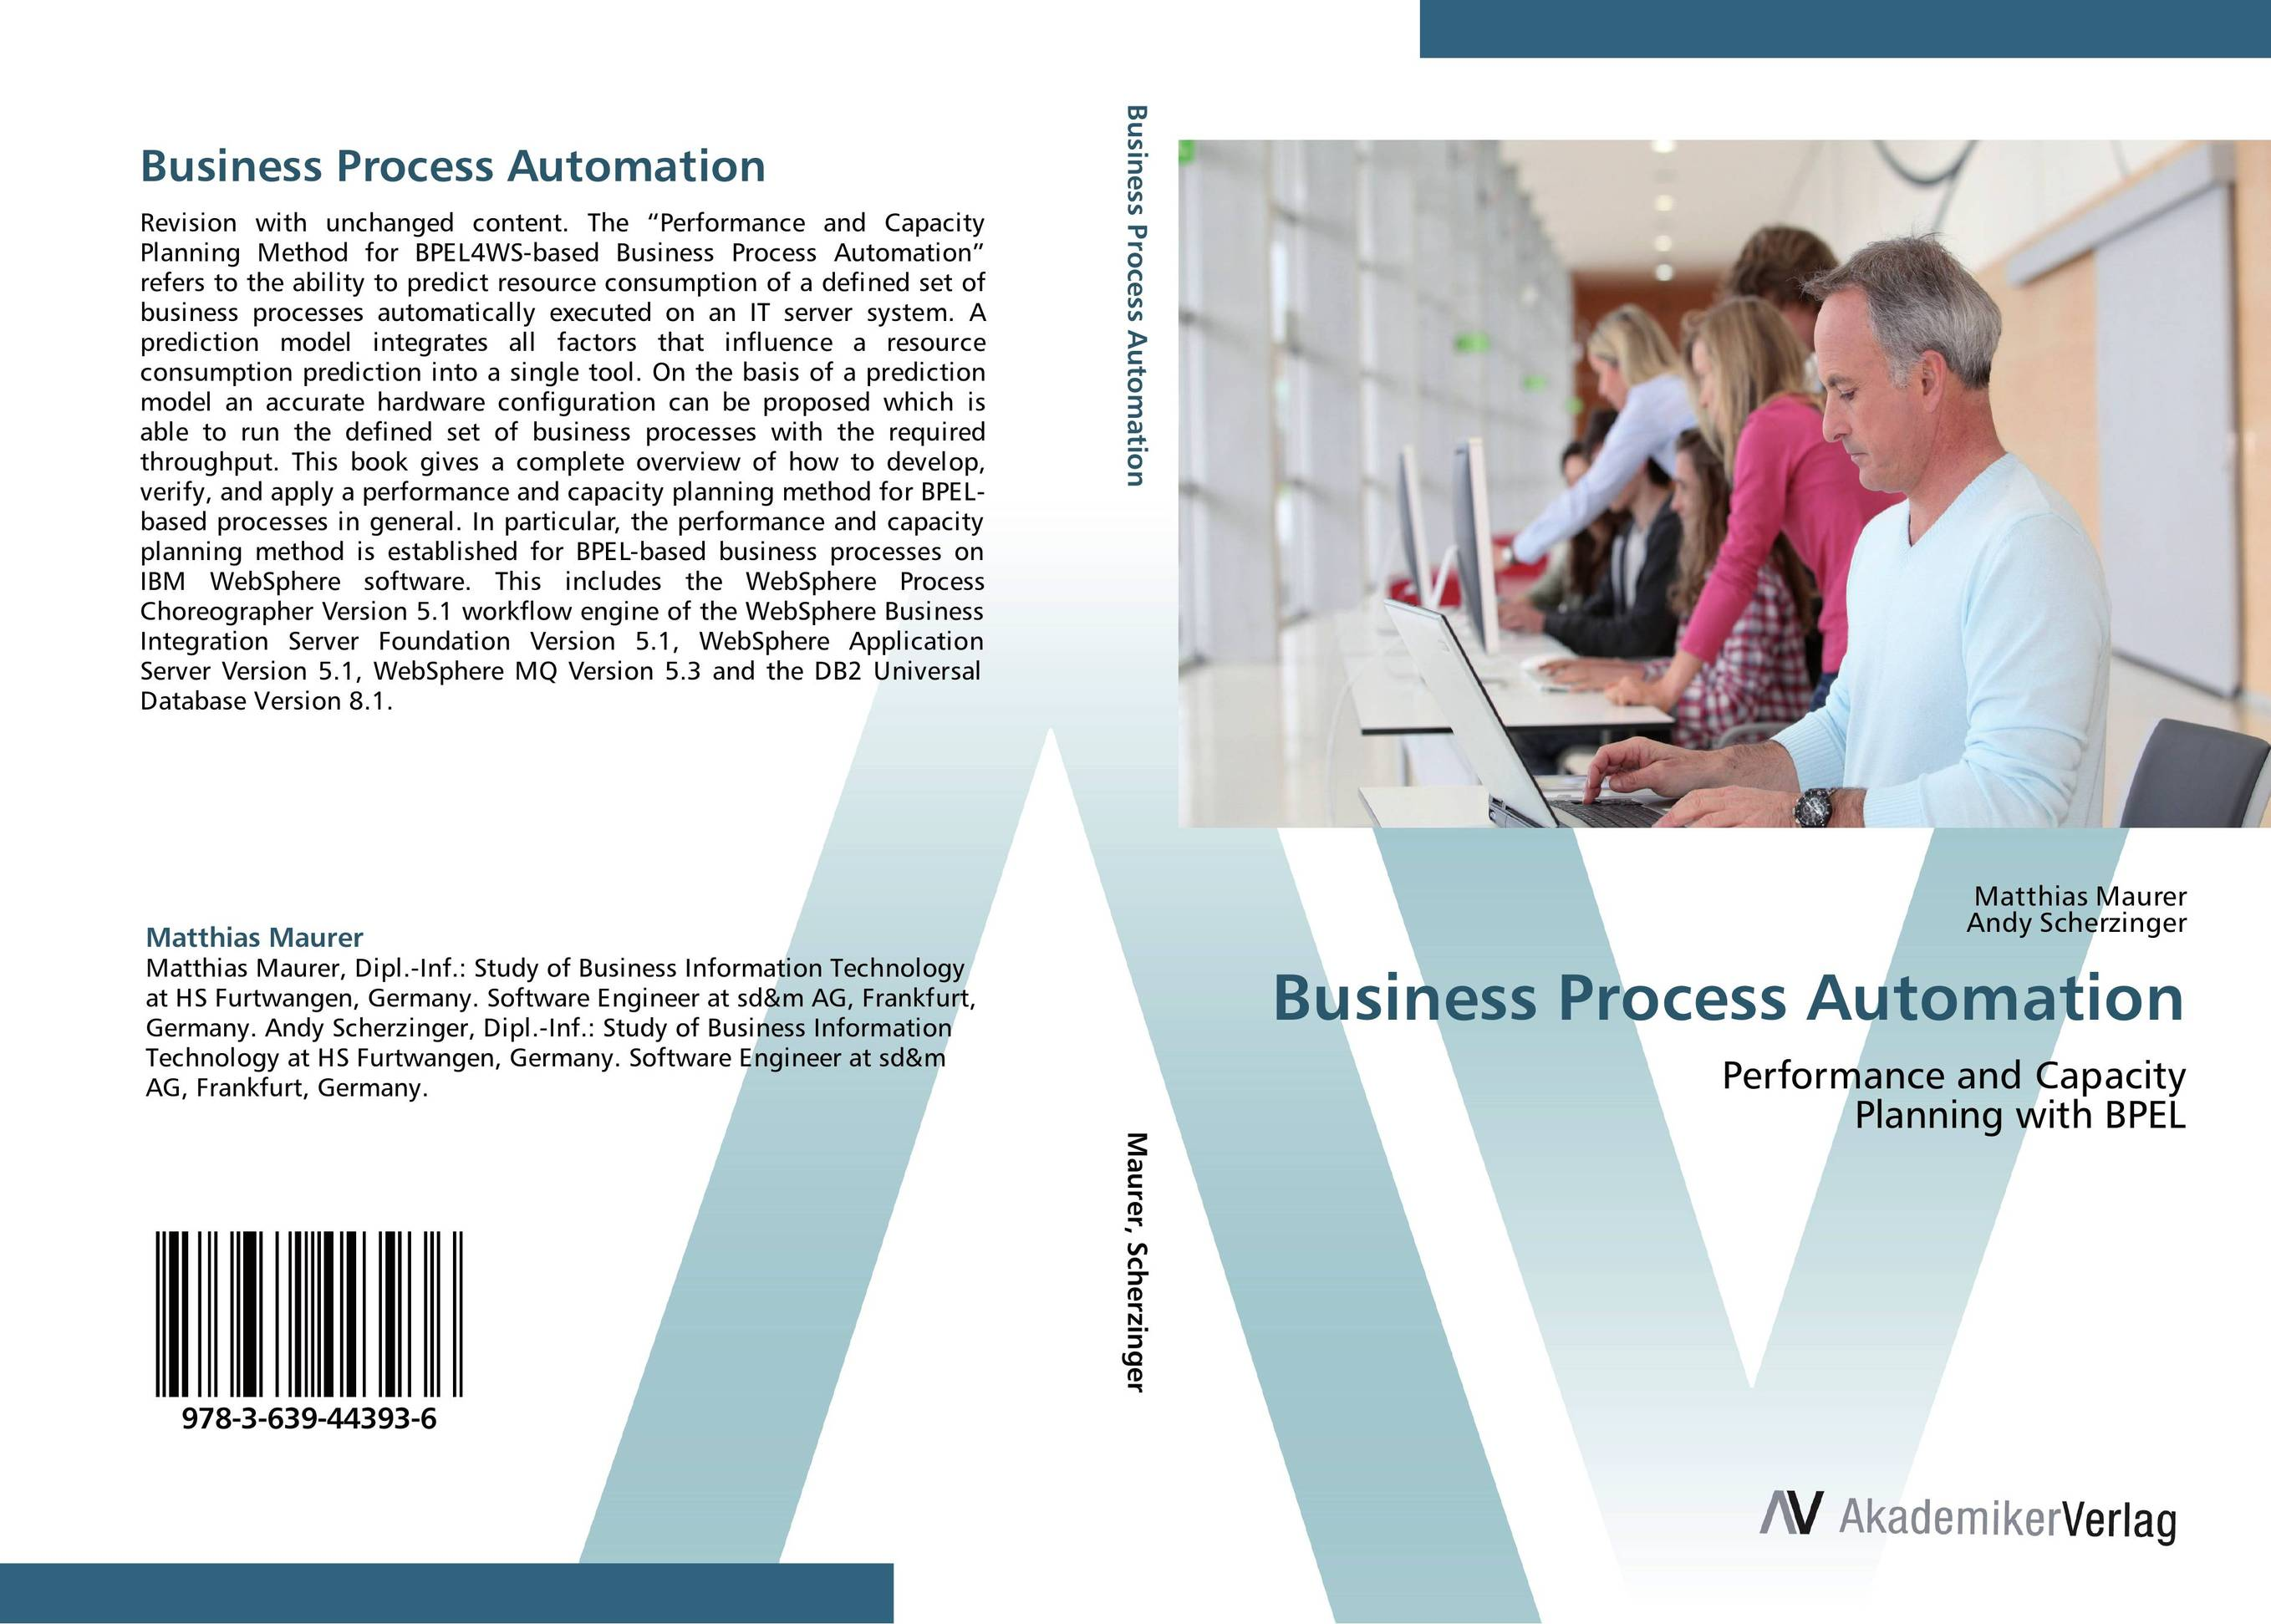 Business Process Automation overview of web based business